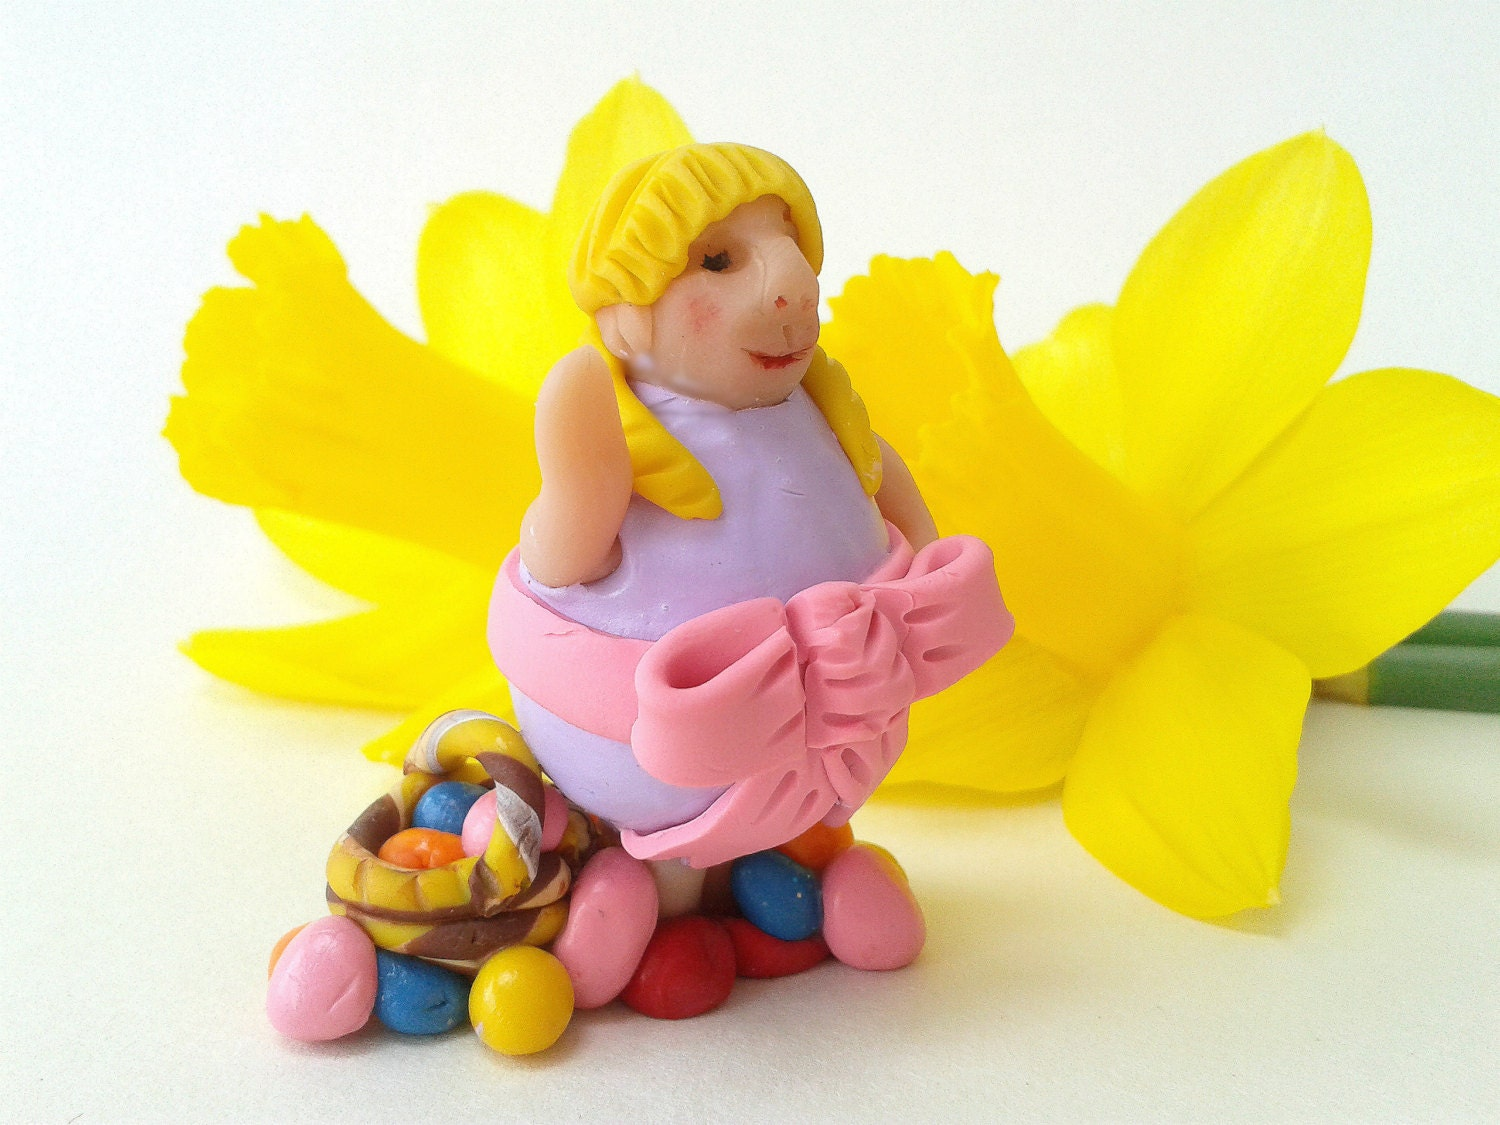 Easter Polymer Clay Figurine Girl in Easter Egg Costume Easter Ornament Diorama Figure Easter Cake Topper Decoration Gift for Easter